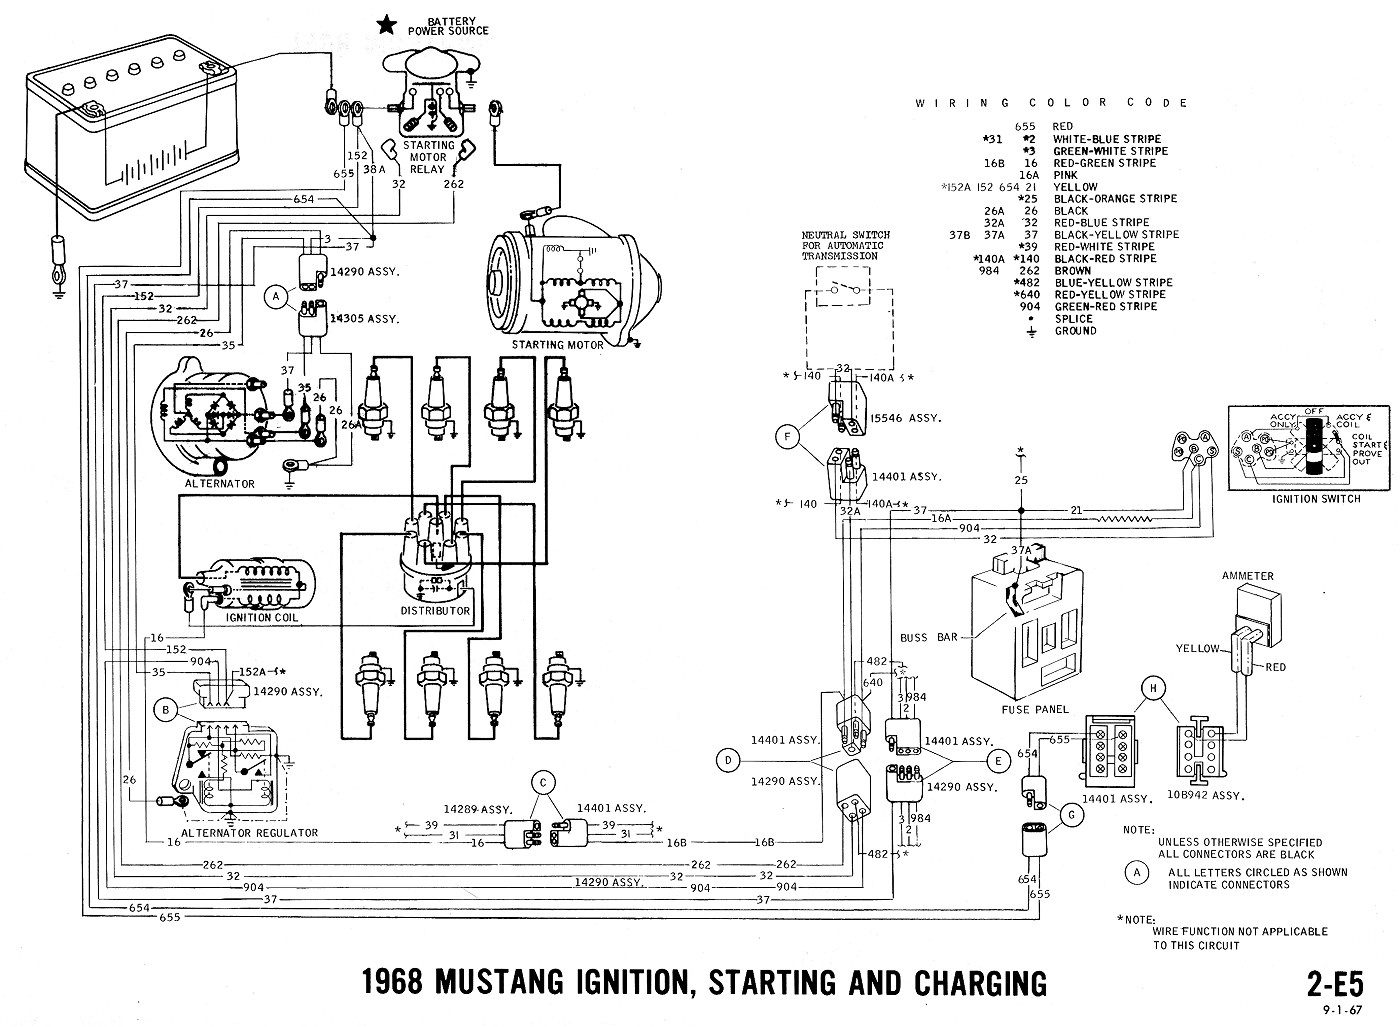 1967 Ford Ignition Switch Wiring Diagram Daily Update F100 For A 1968 Mustang Just Data Rh Ag Skiphire Co Uk